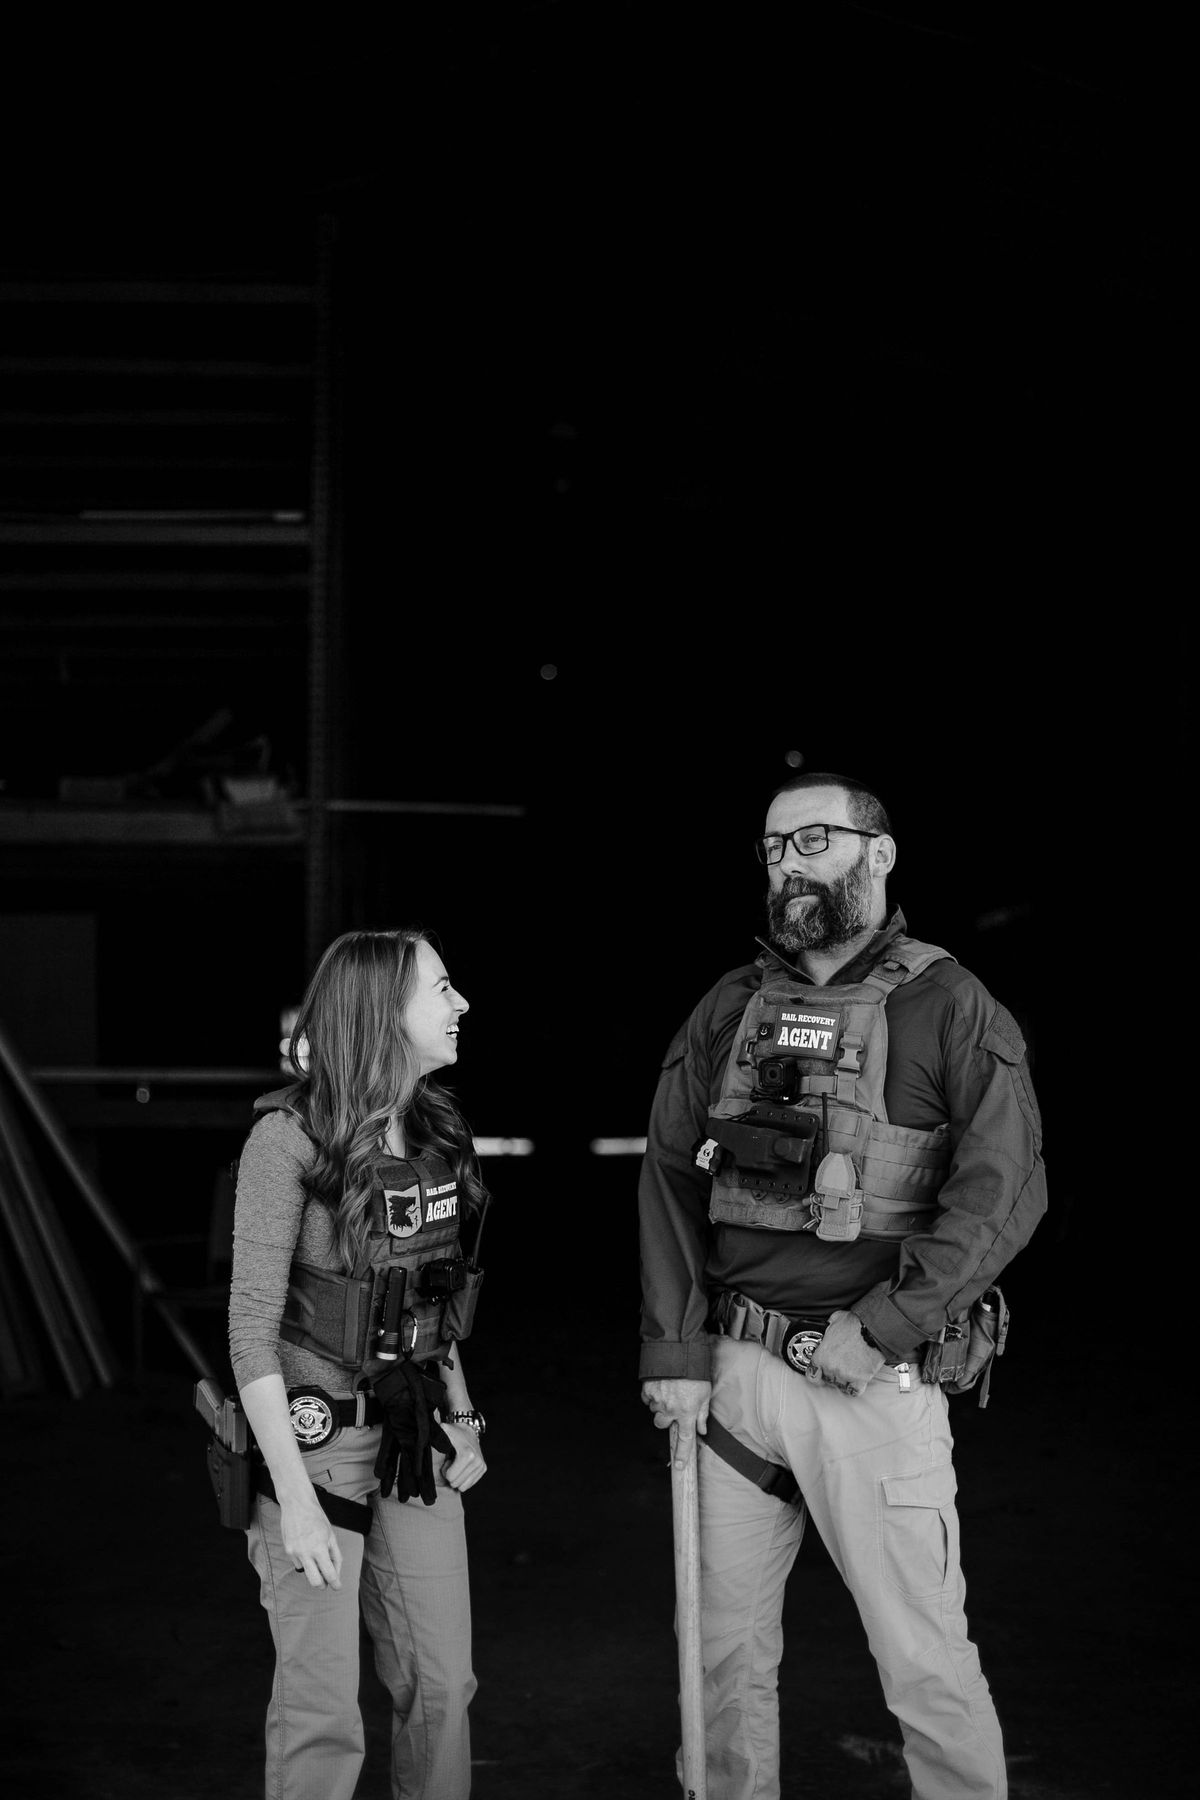 A man and a woman in protective gear, smiling.